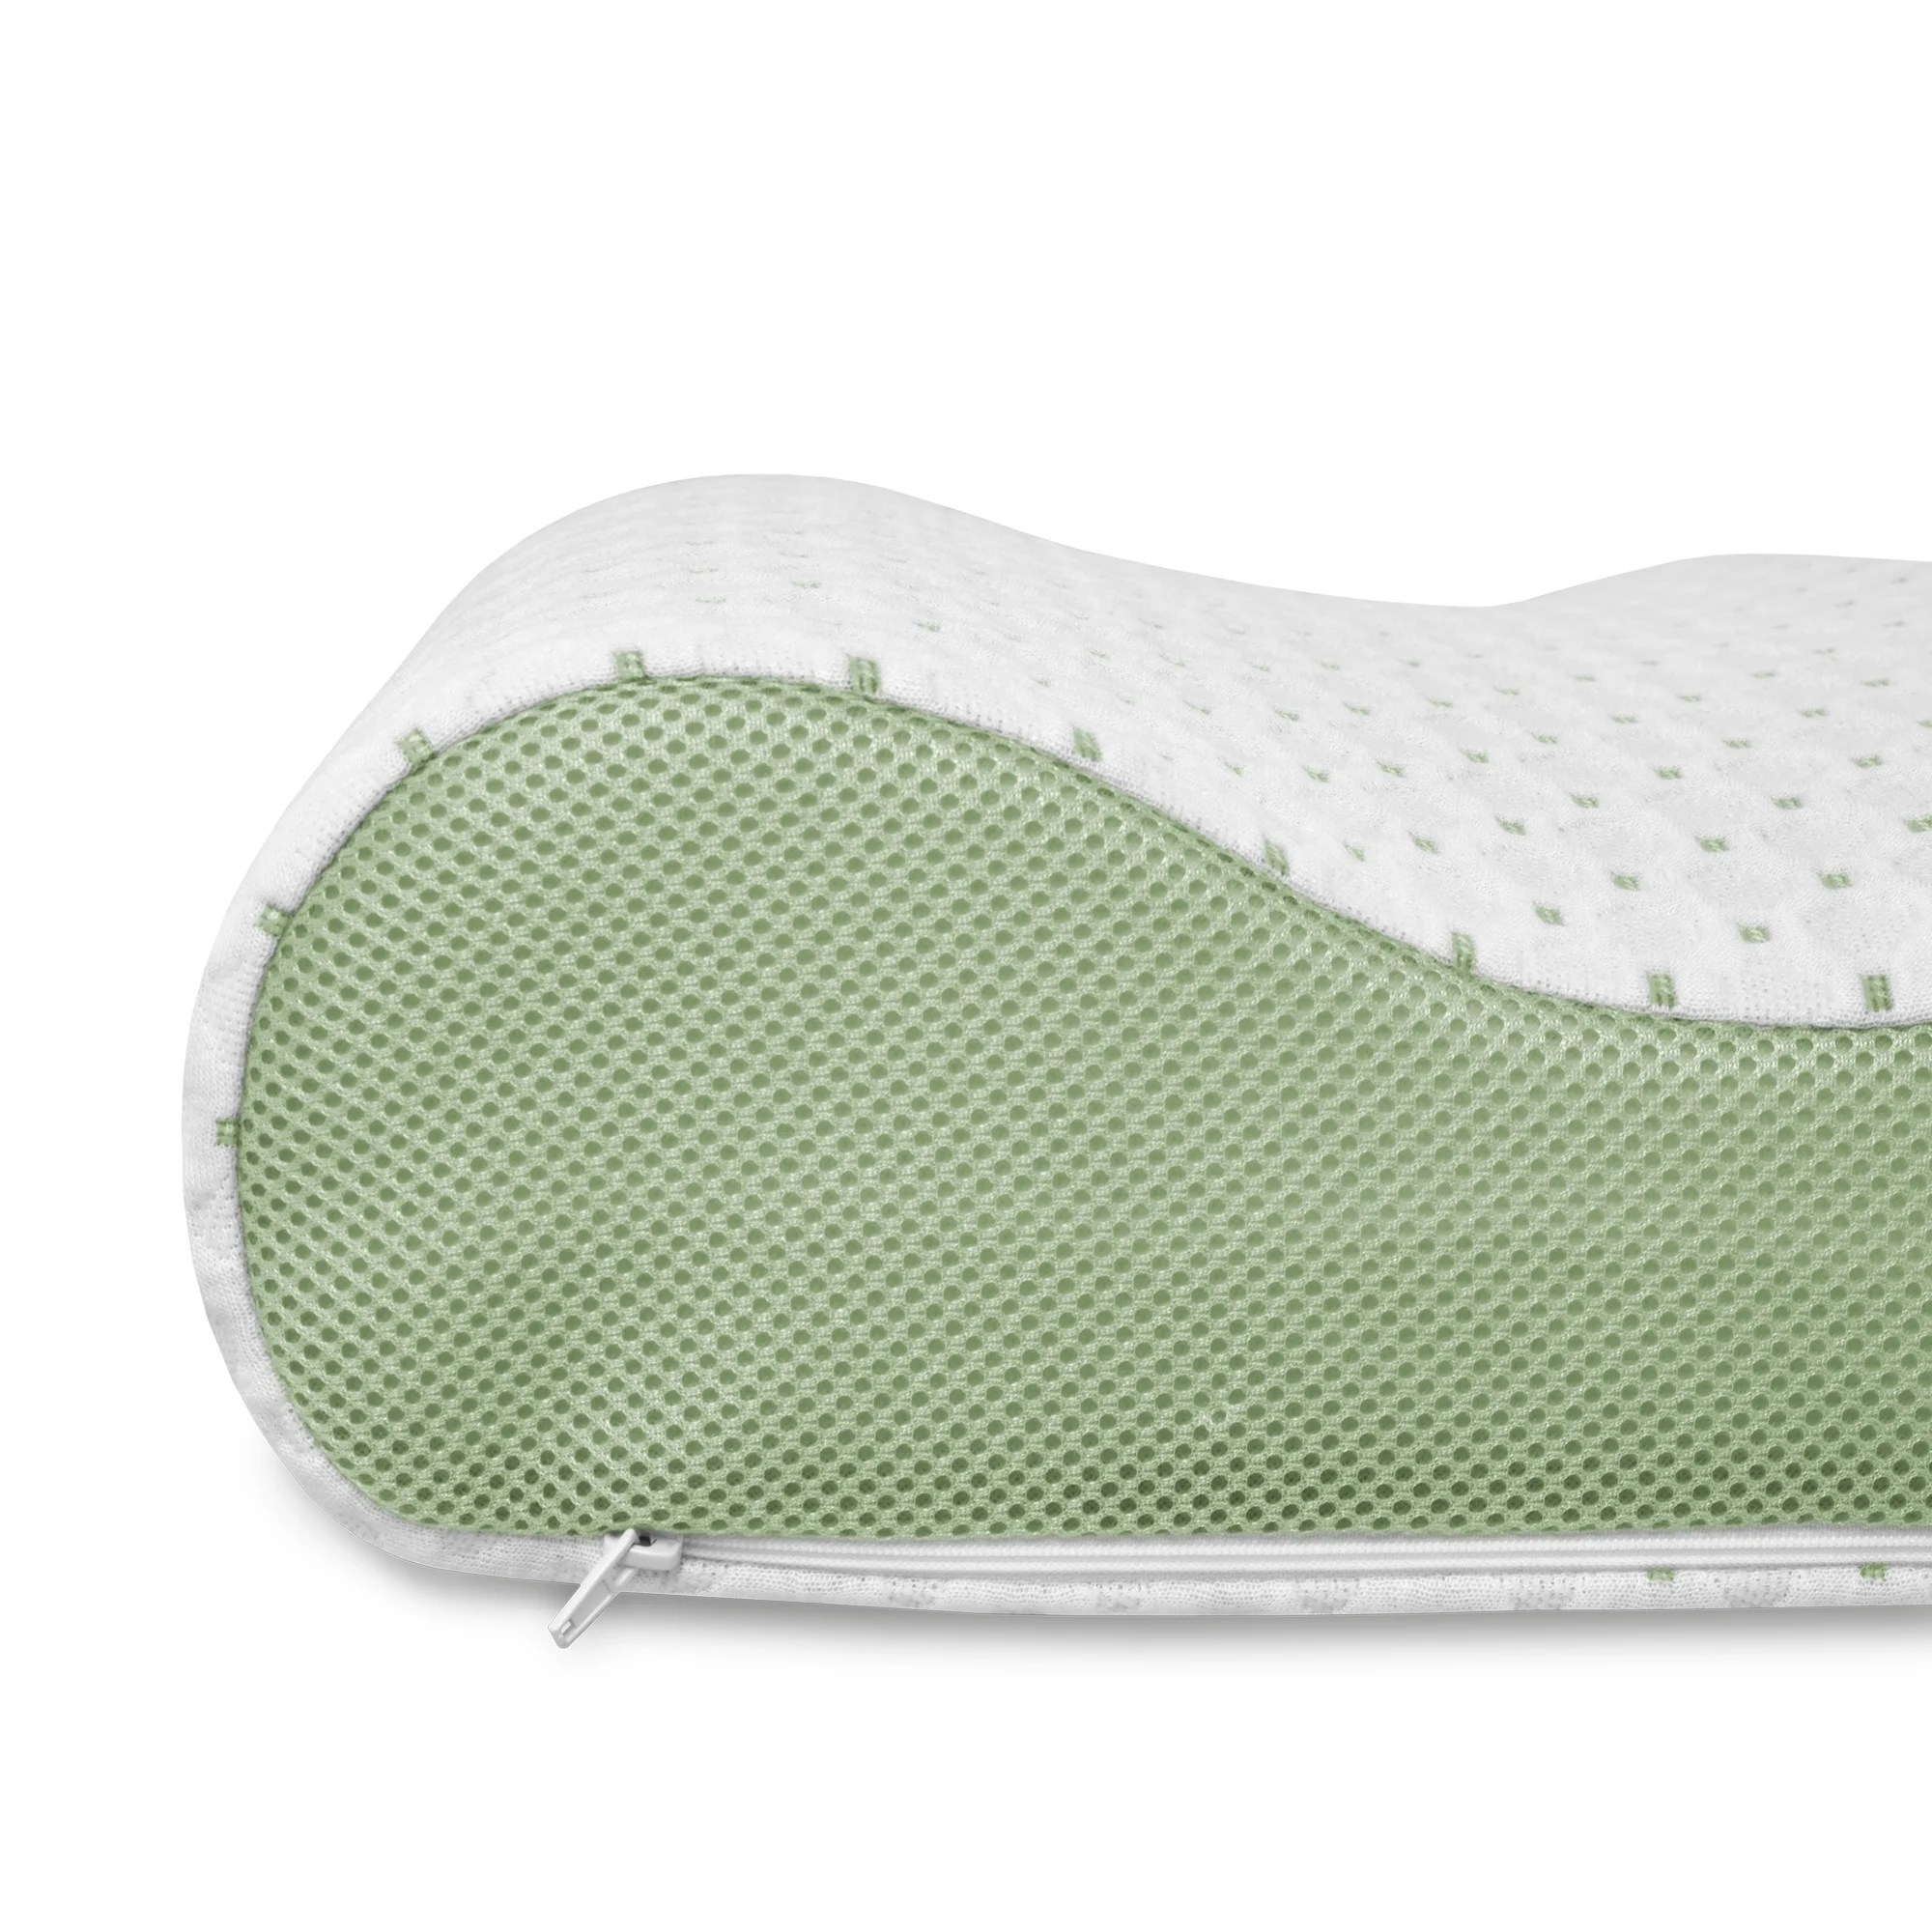 Bed Overlay Sensorpedic Sensorcool Gel Overlay Contour Bed Pillow White